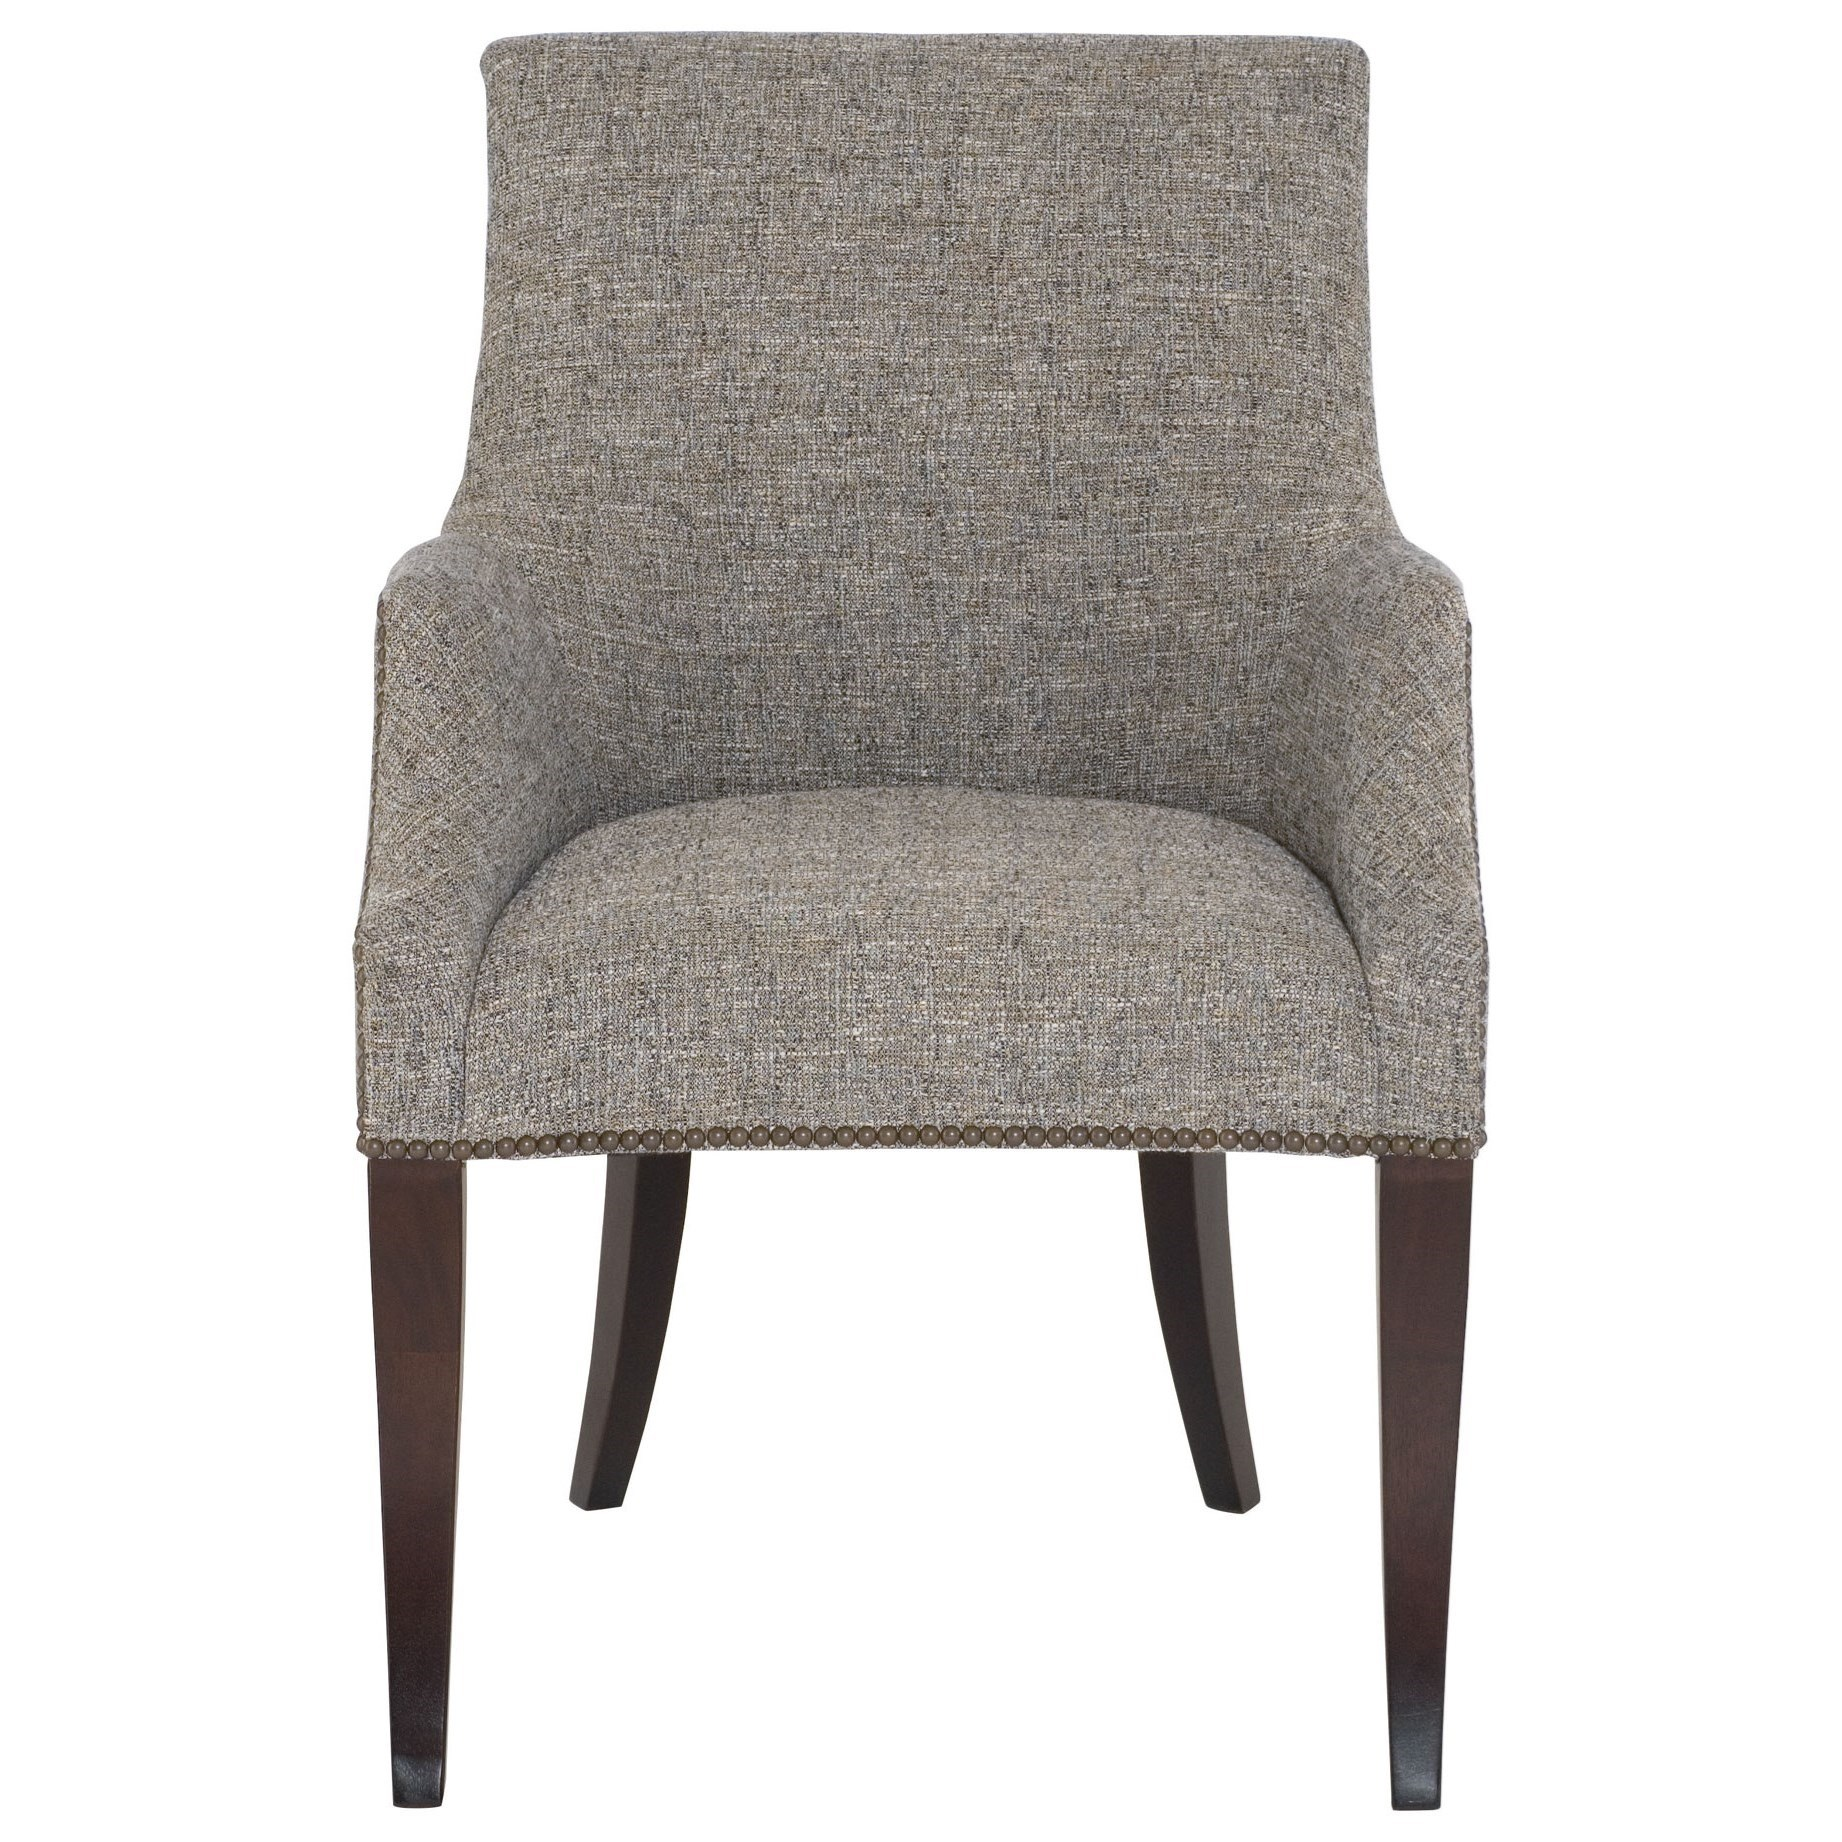 upholstered dining room chairs with arms victorian for sale bernhardt keeley arm chair nail